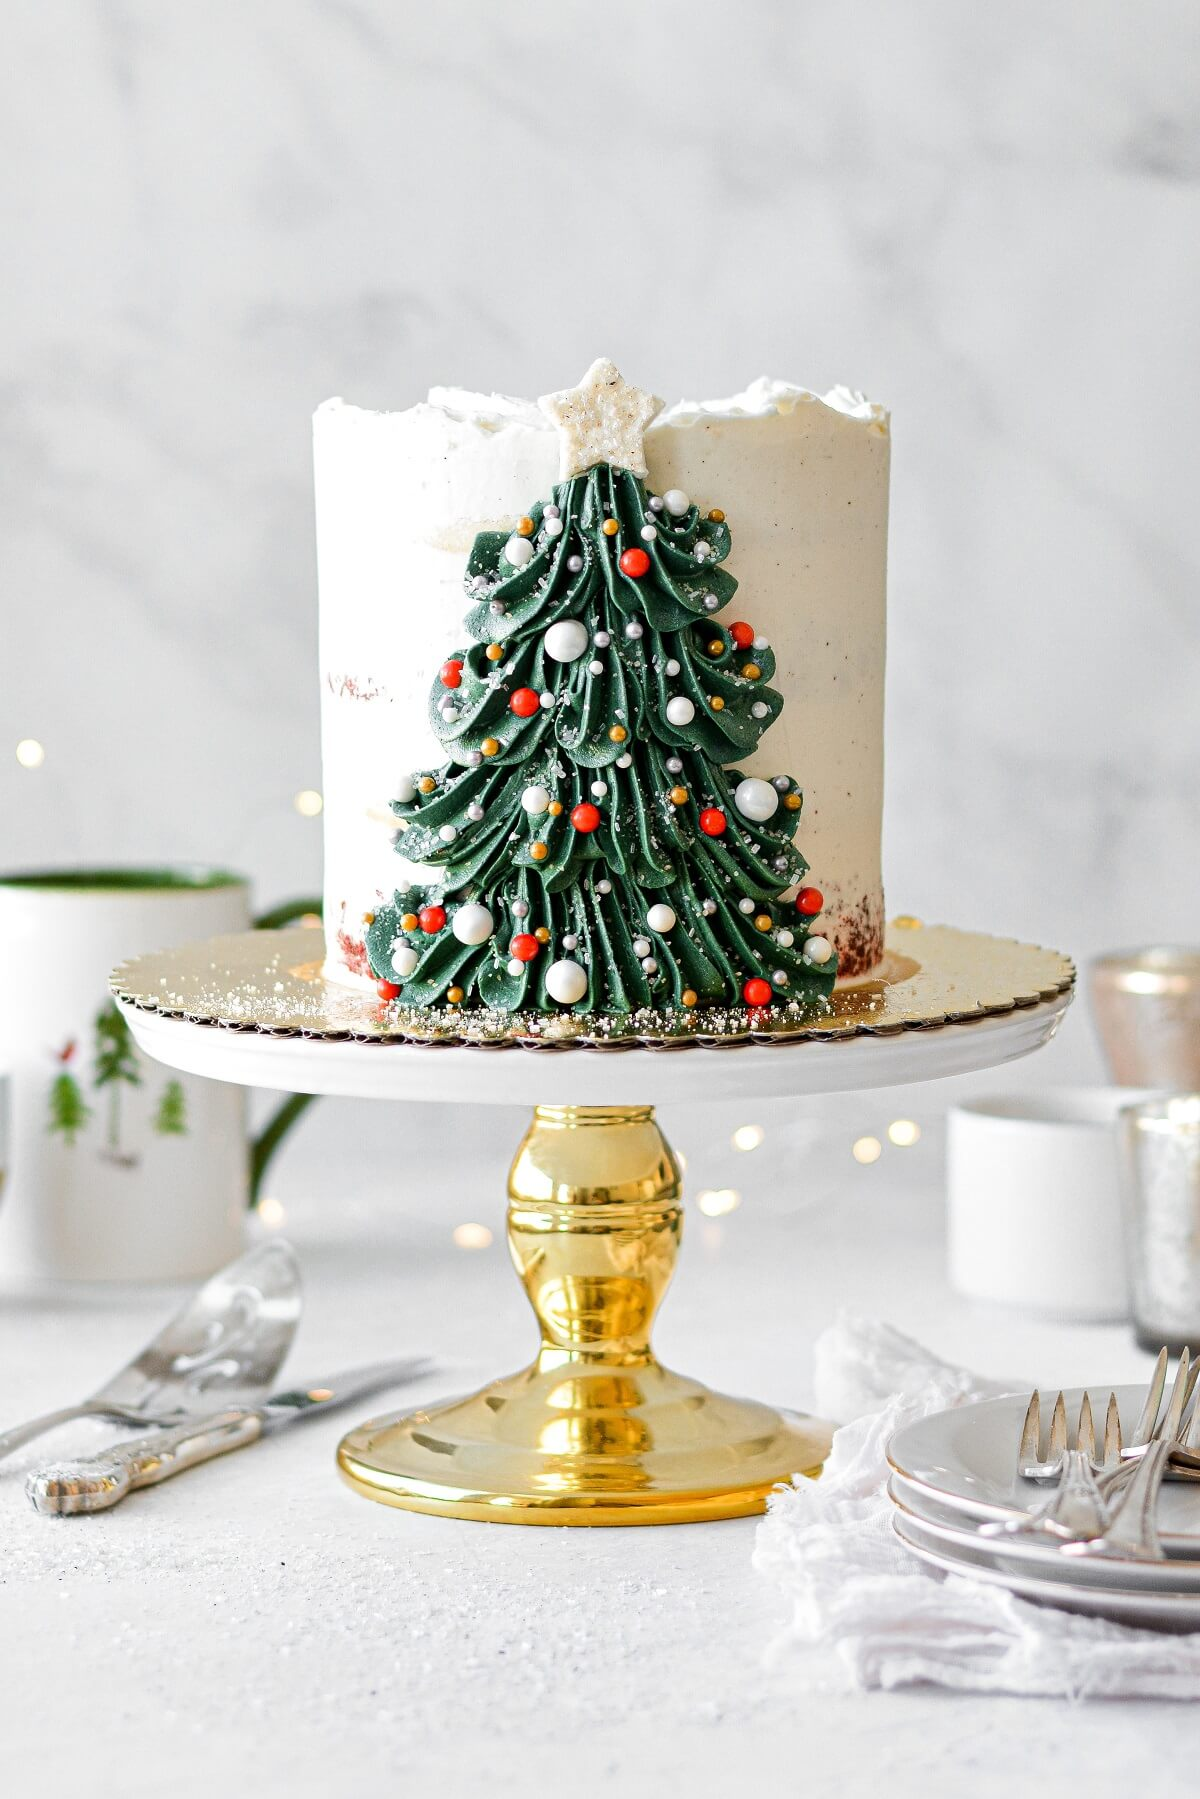 A Christmas tree cake with a buttercream Christmas tree decorated with sprinkle ornaments and a sugar star.